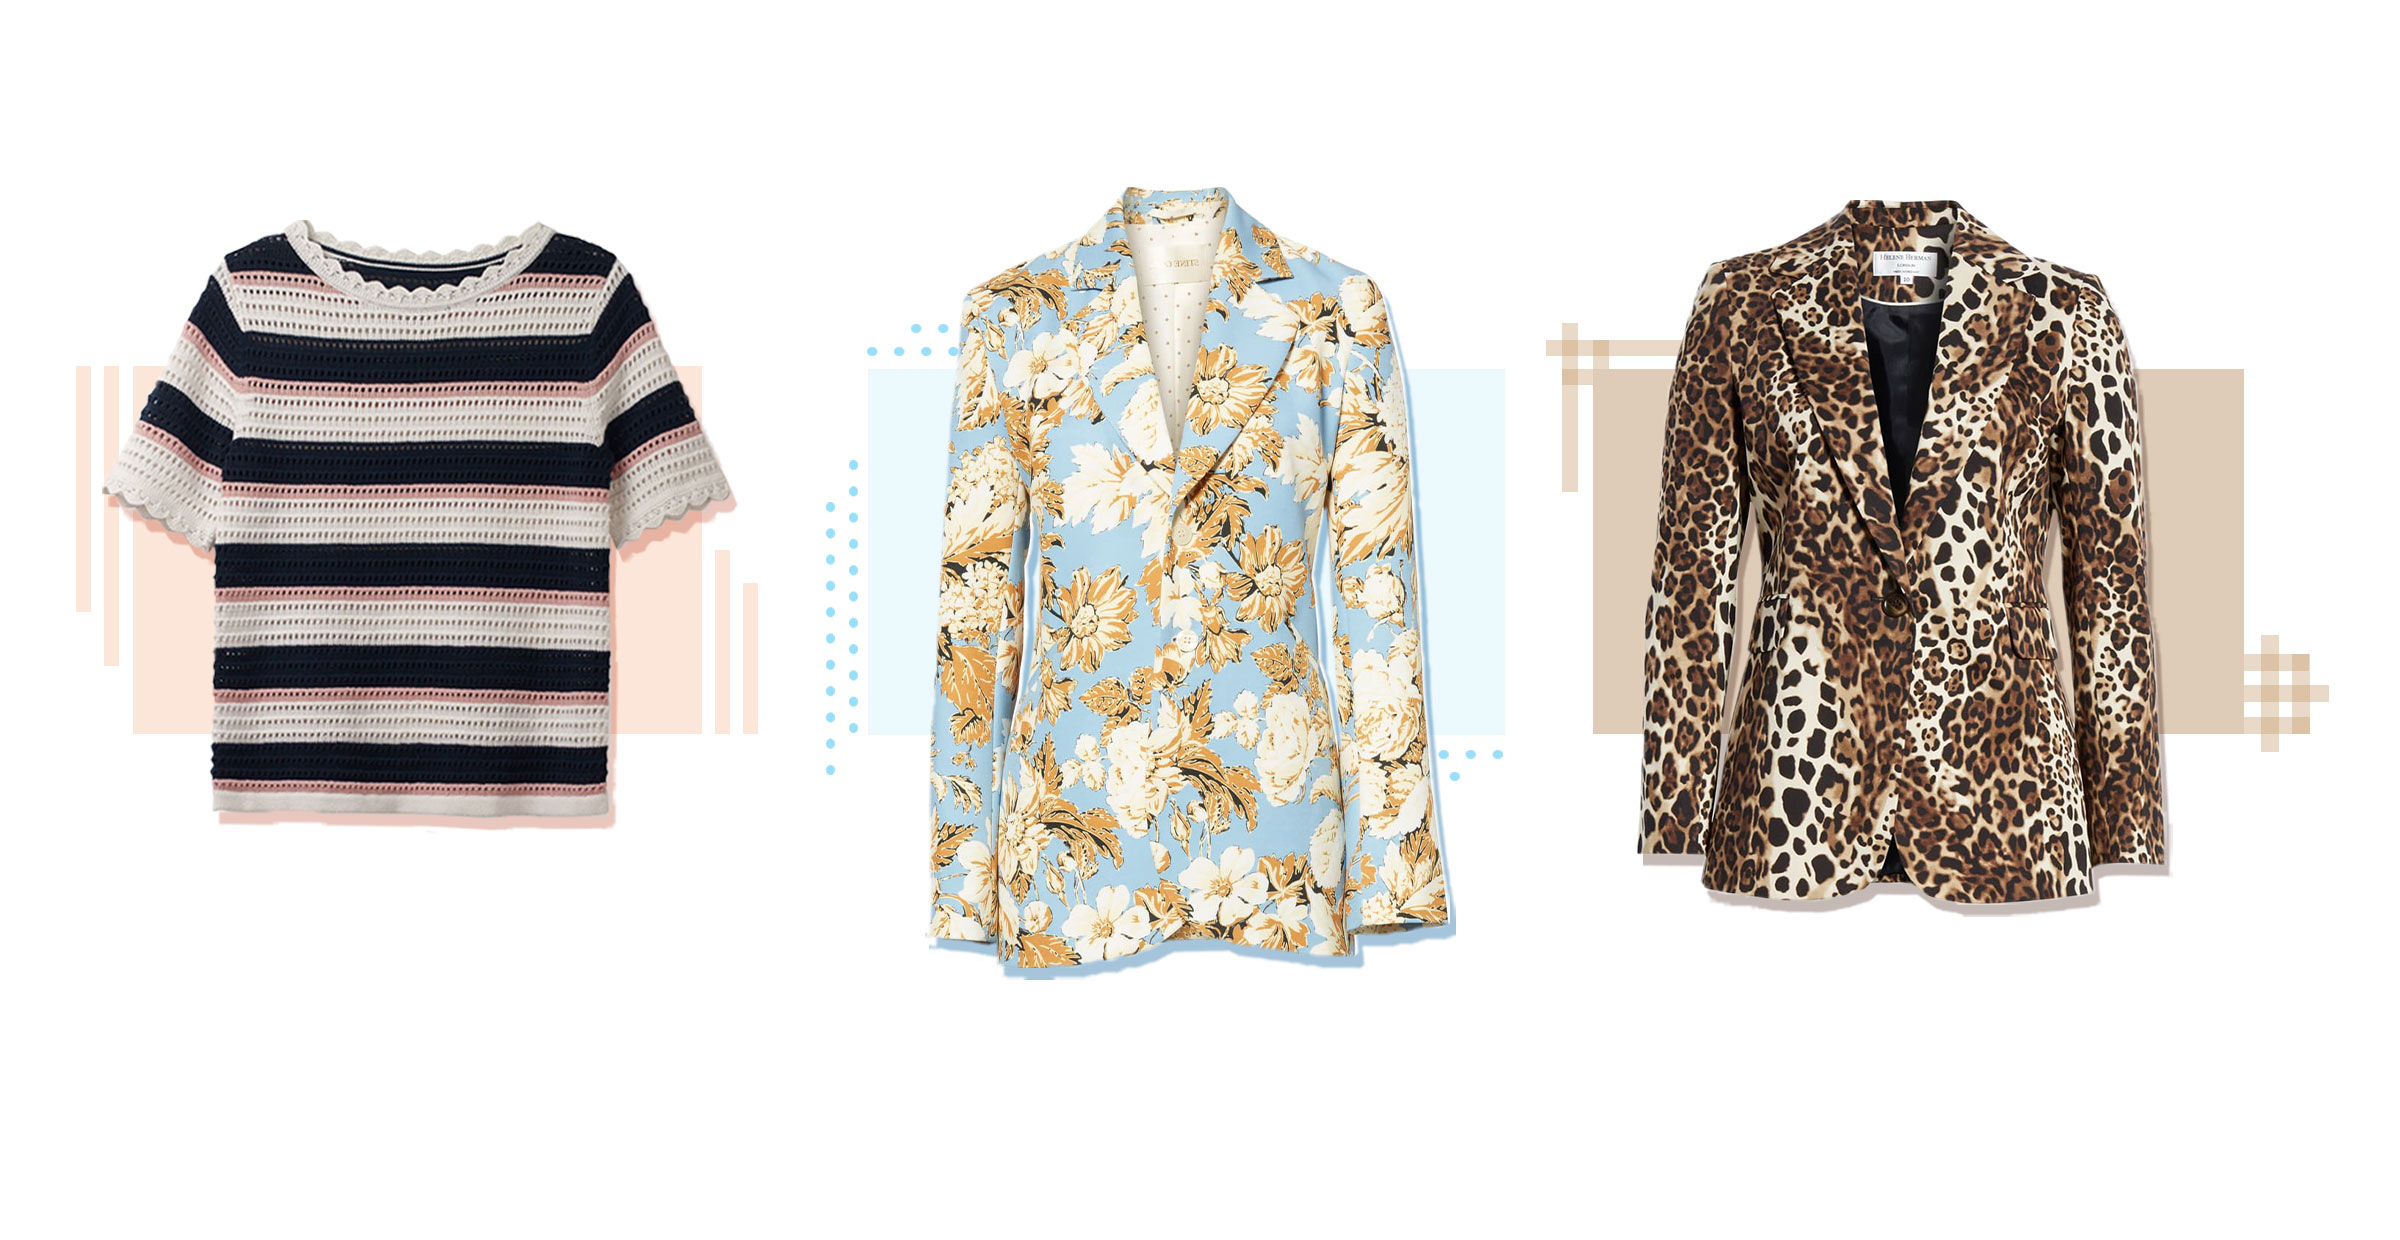 Workwear How-Tos: Mixing Prints